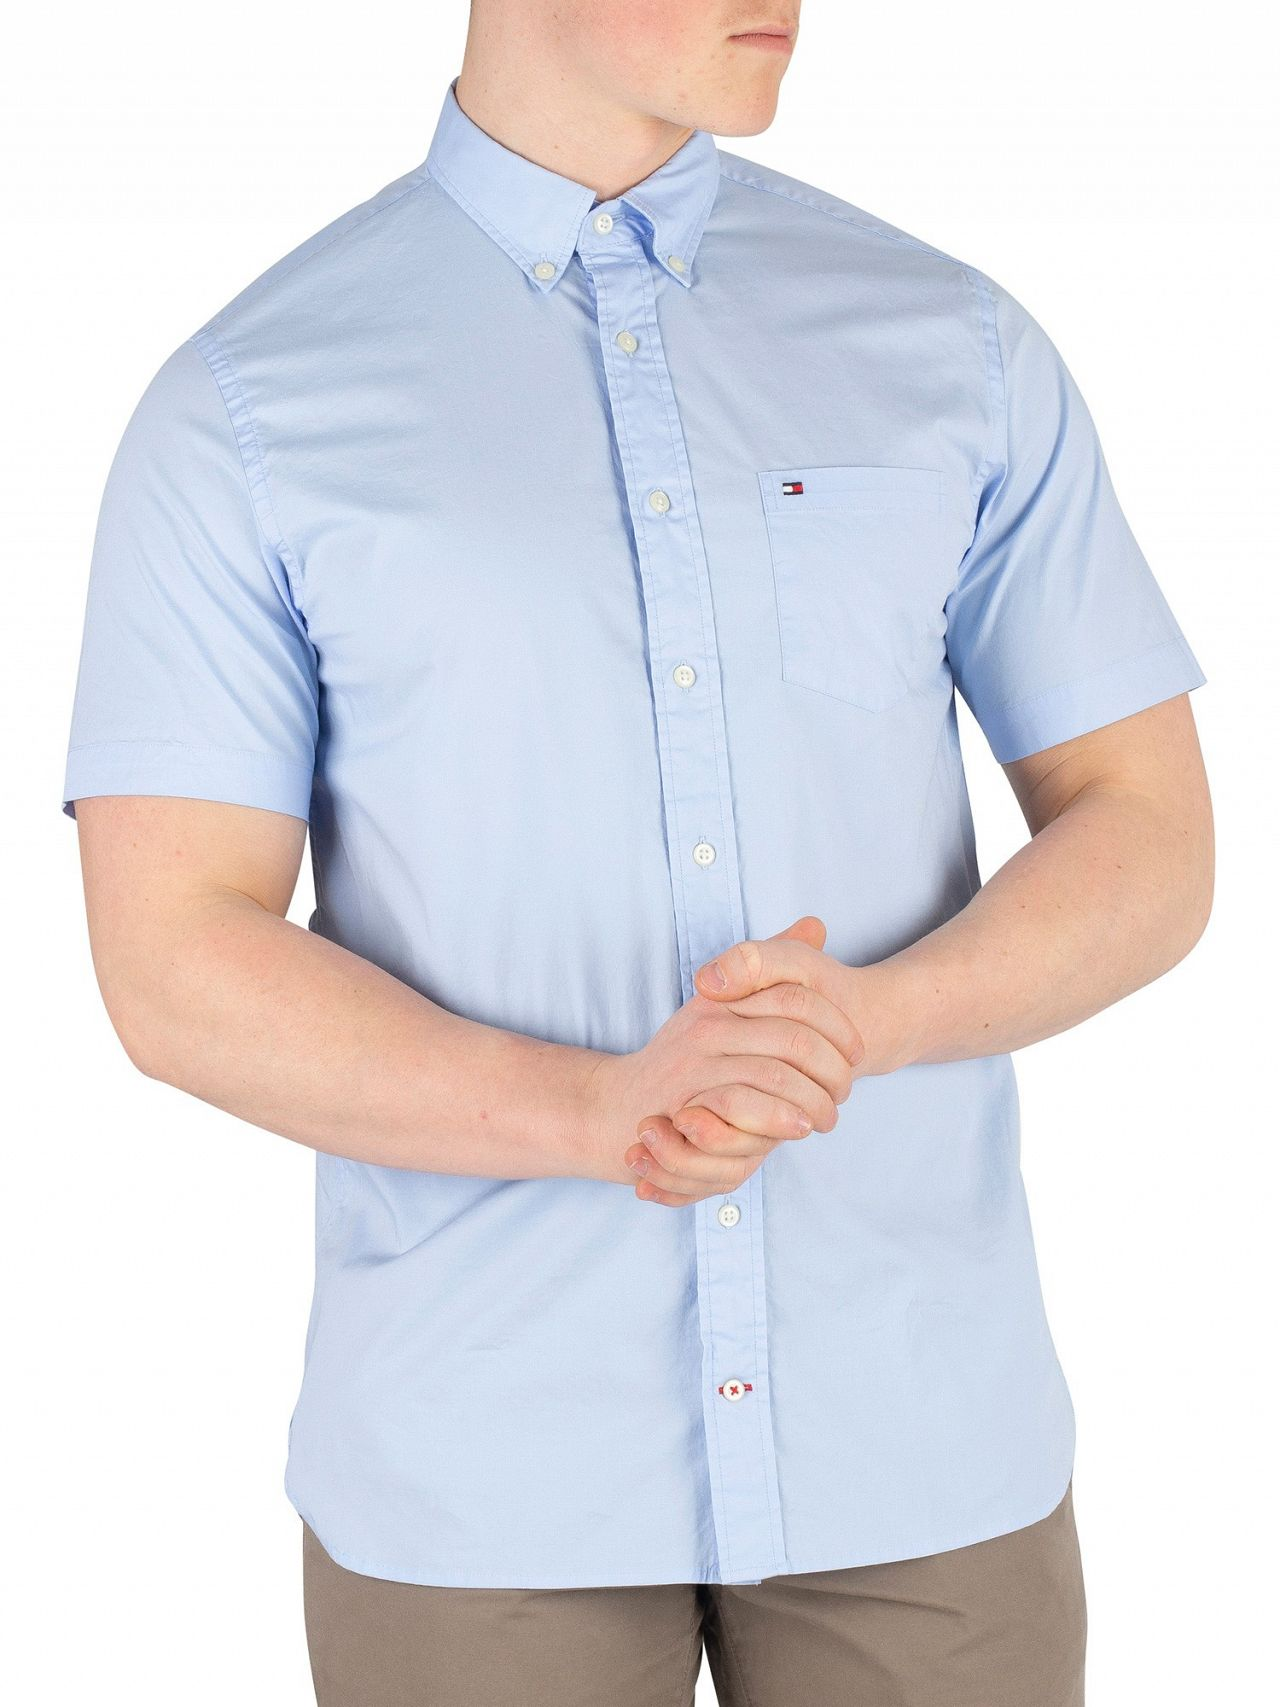 a392e3f0c Tommy Hilfiger Light Blue Stretch Poplin Shortsleeved Shirt. Tap to expand